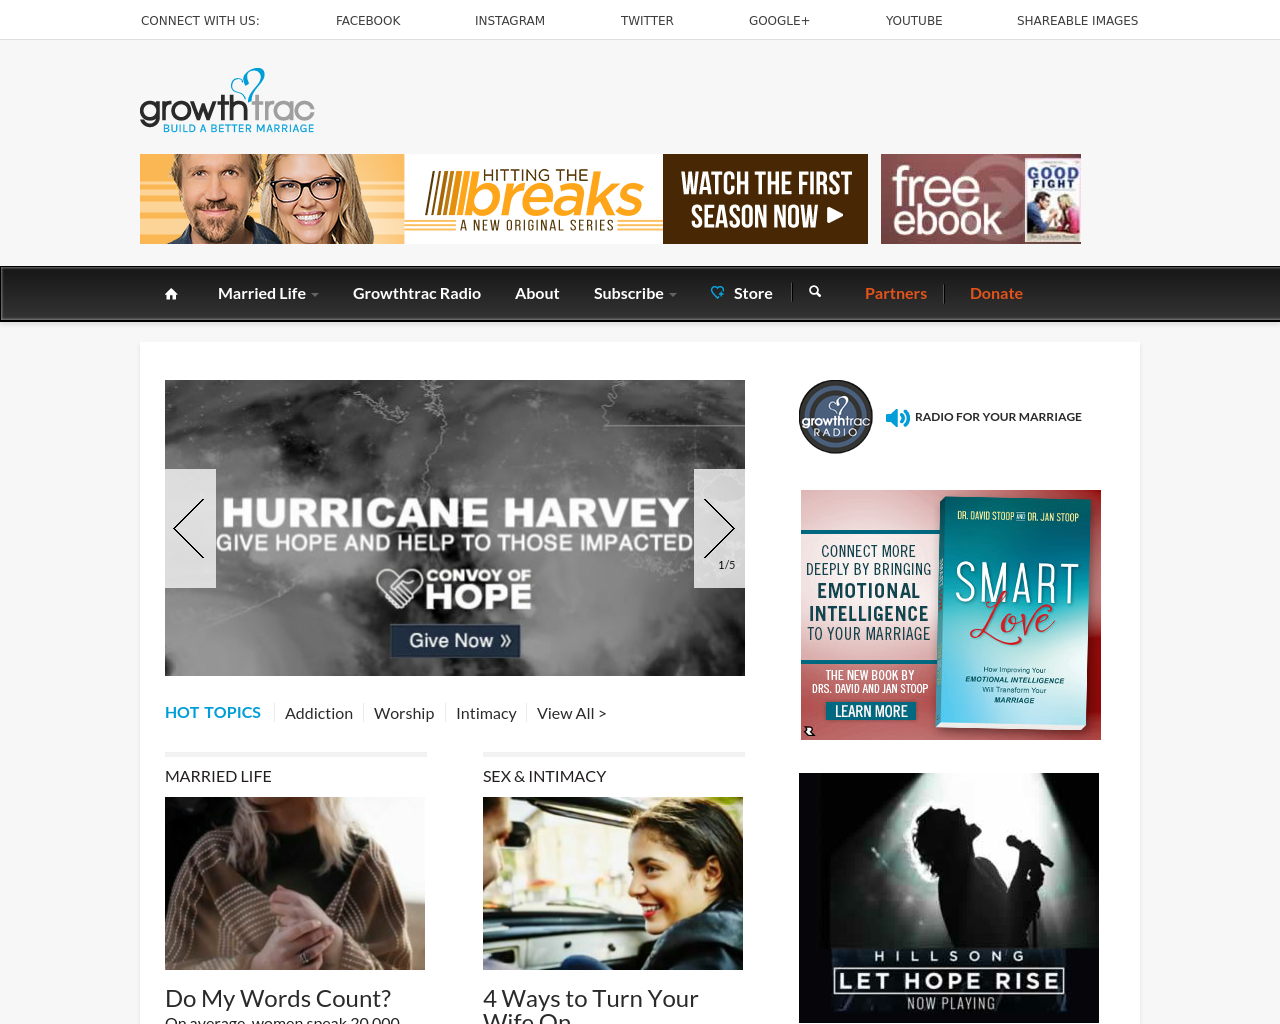 growthtrac-Advertising-Reviews-Pricing